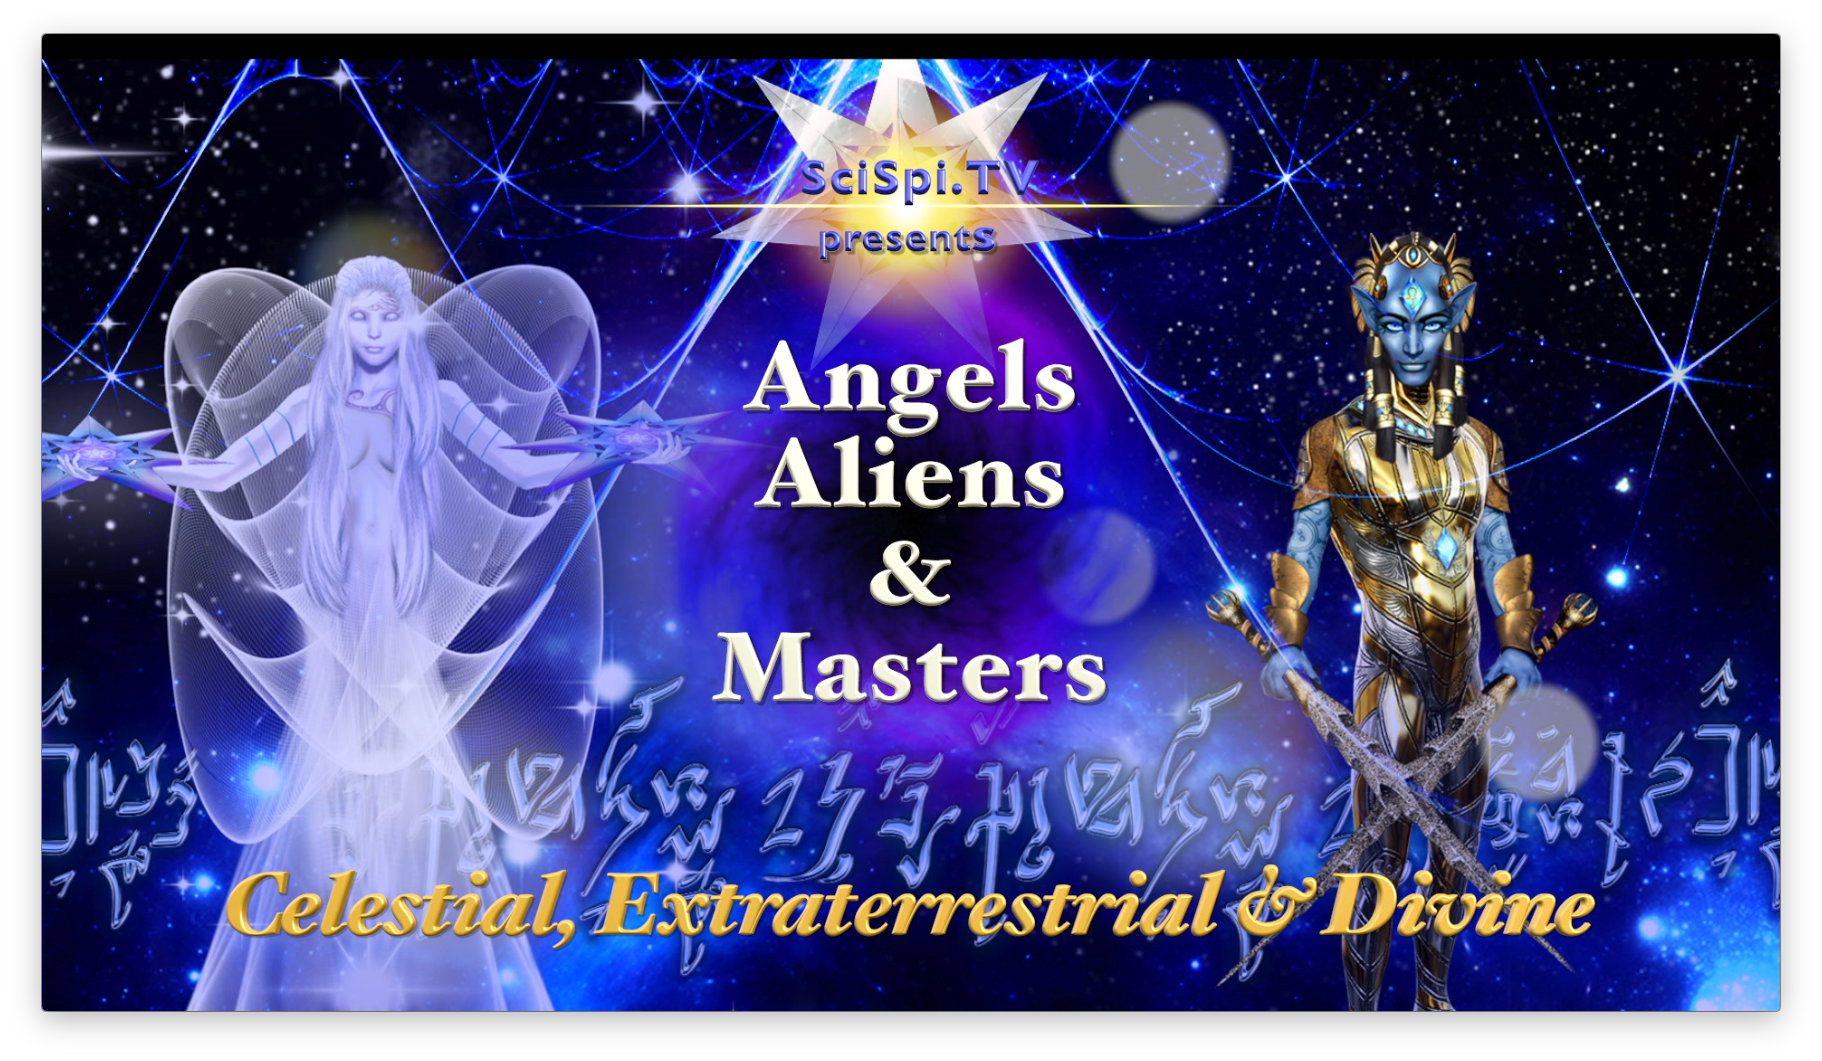 Angels, Aliens and Masters